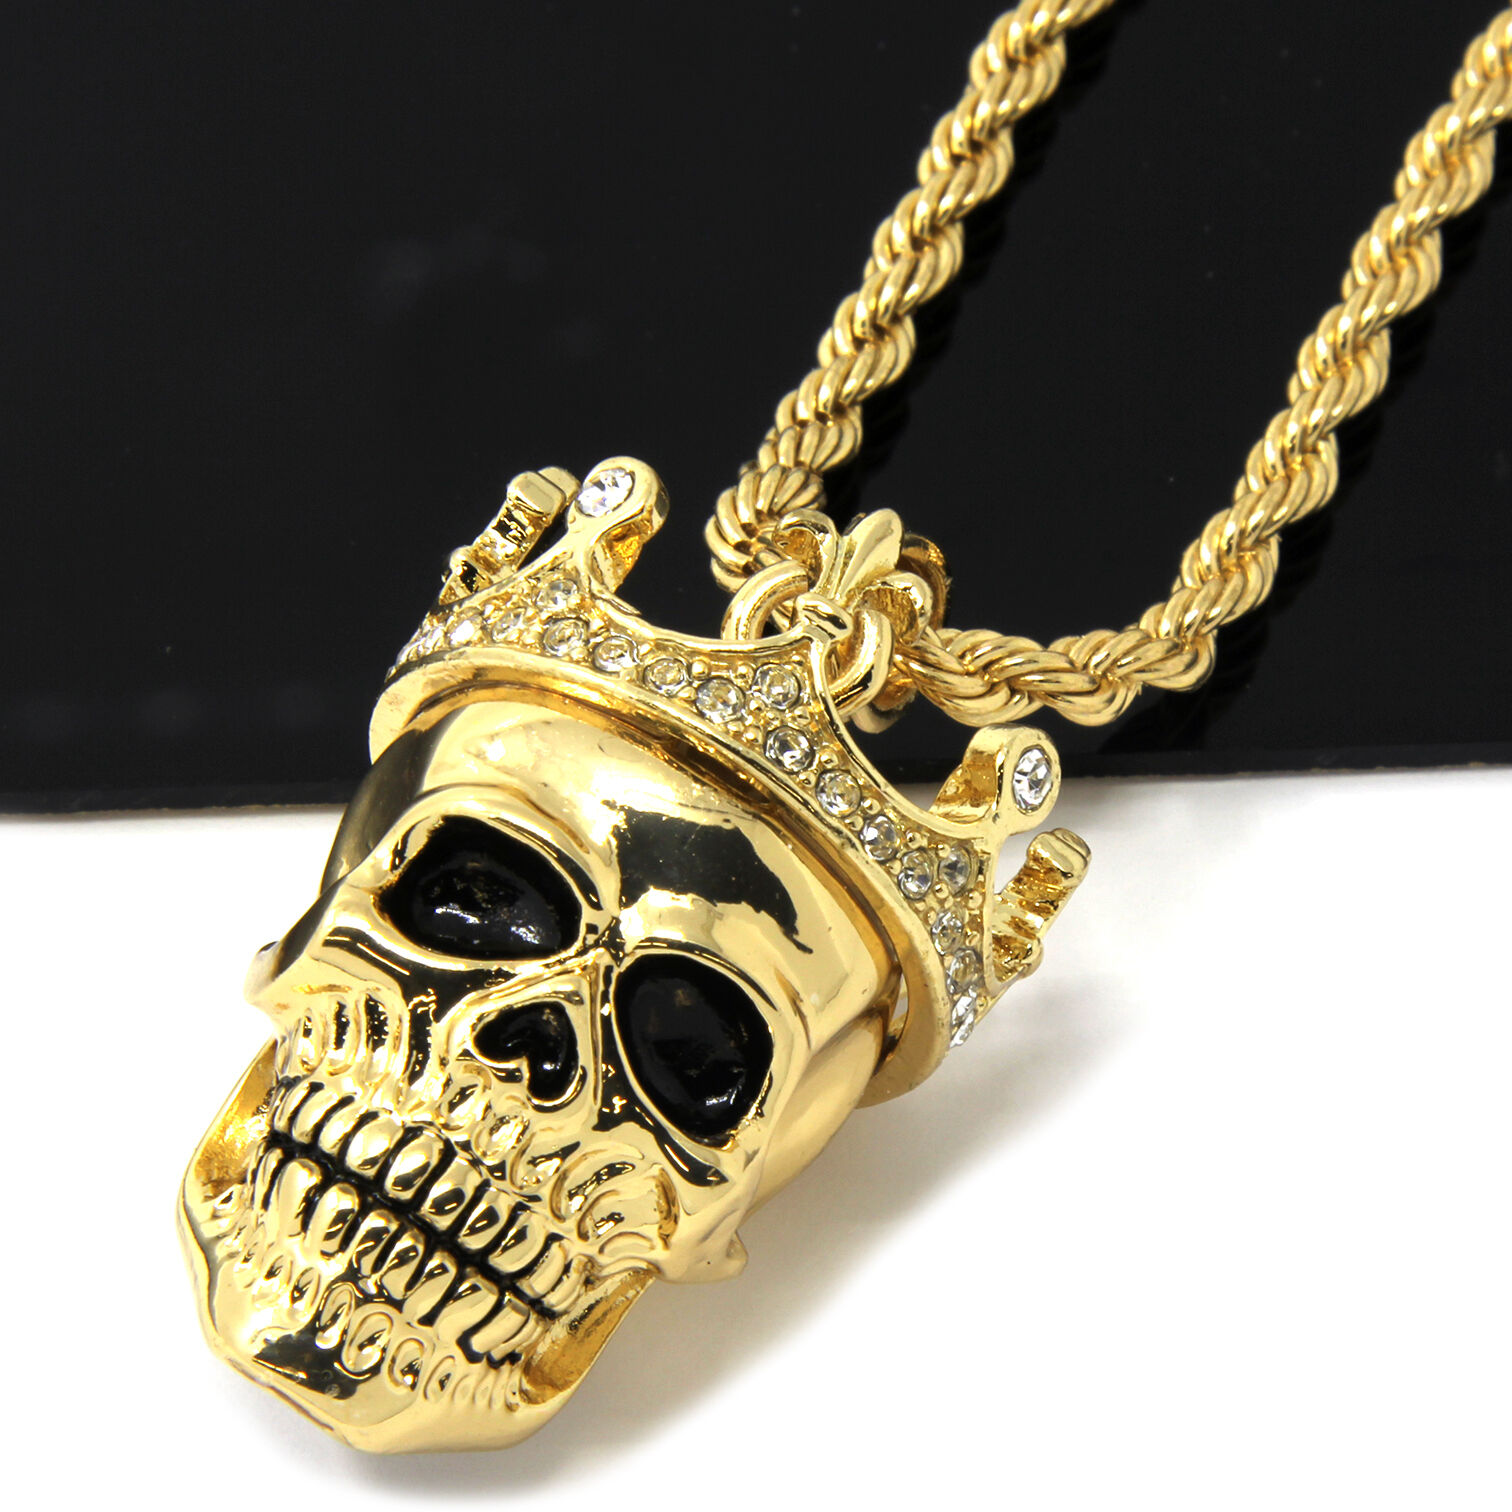 diamond pendant skull wh pirate flag p mens